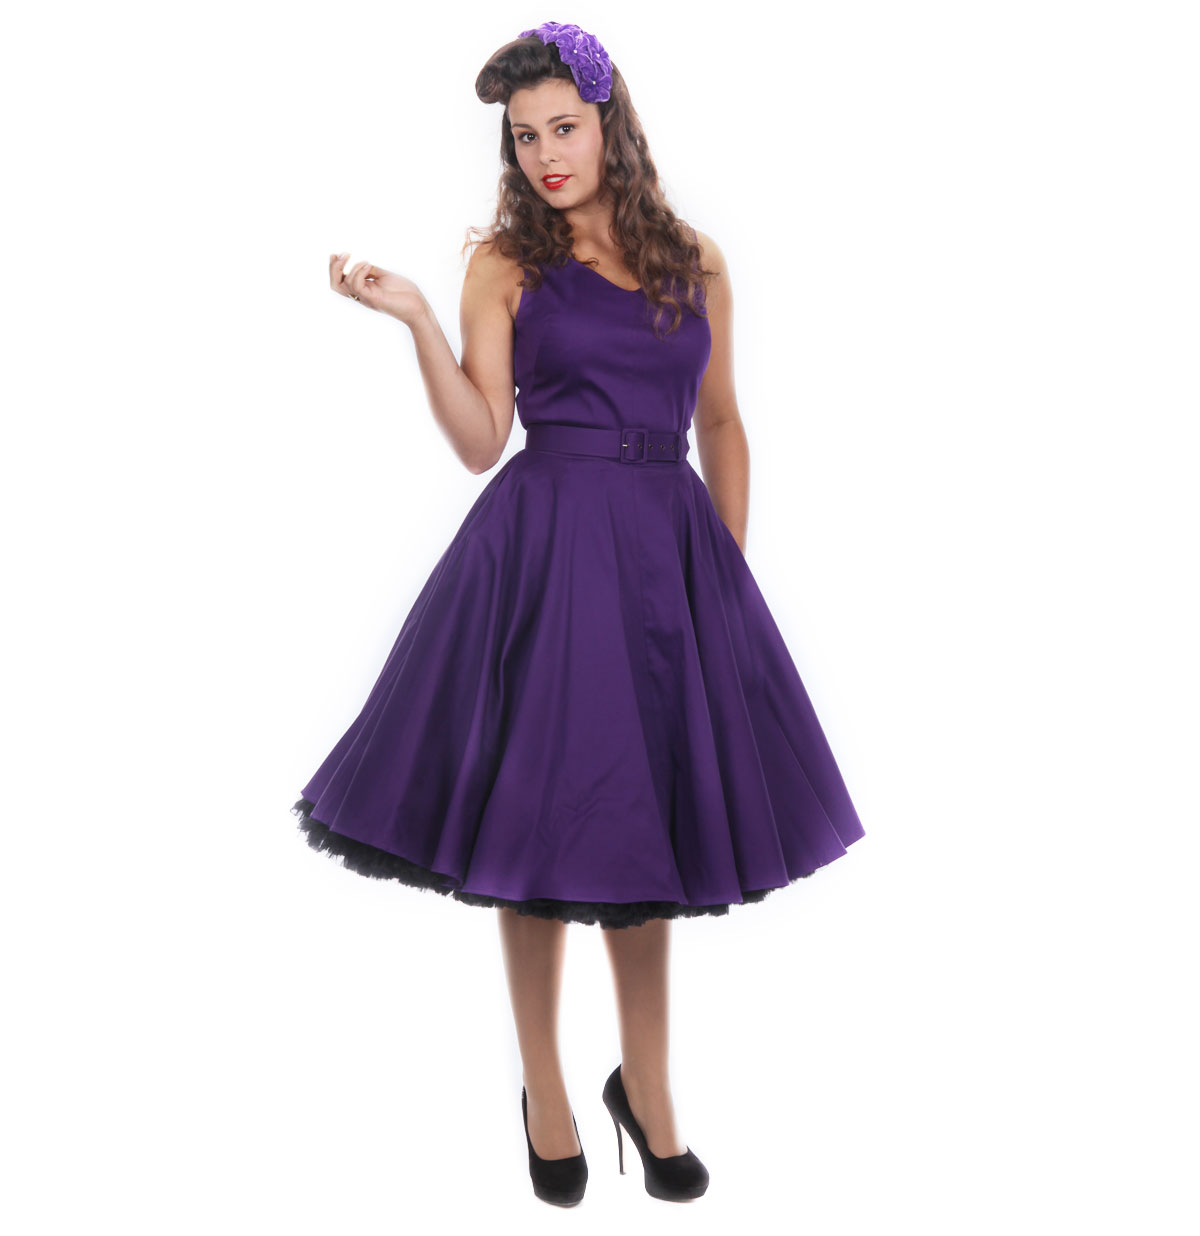 Havana Nights Dress, Purple